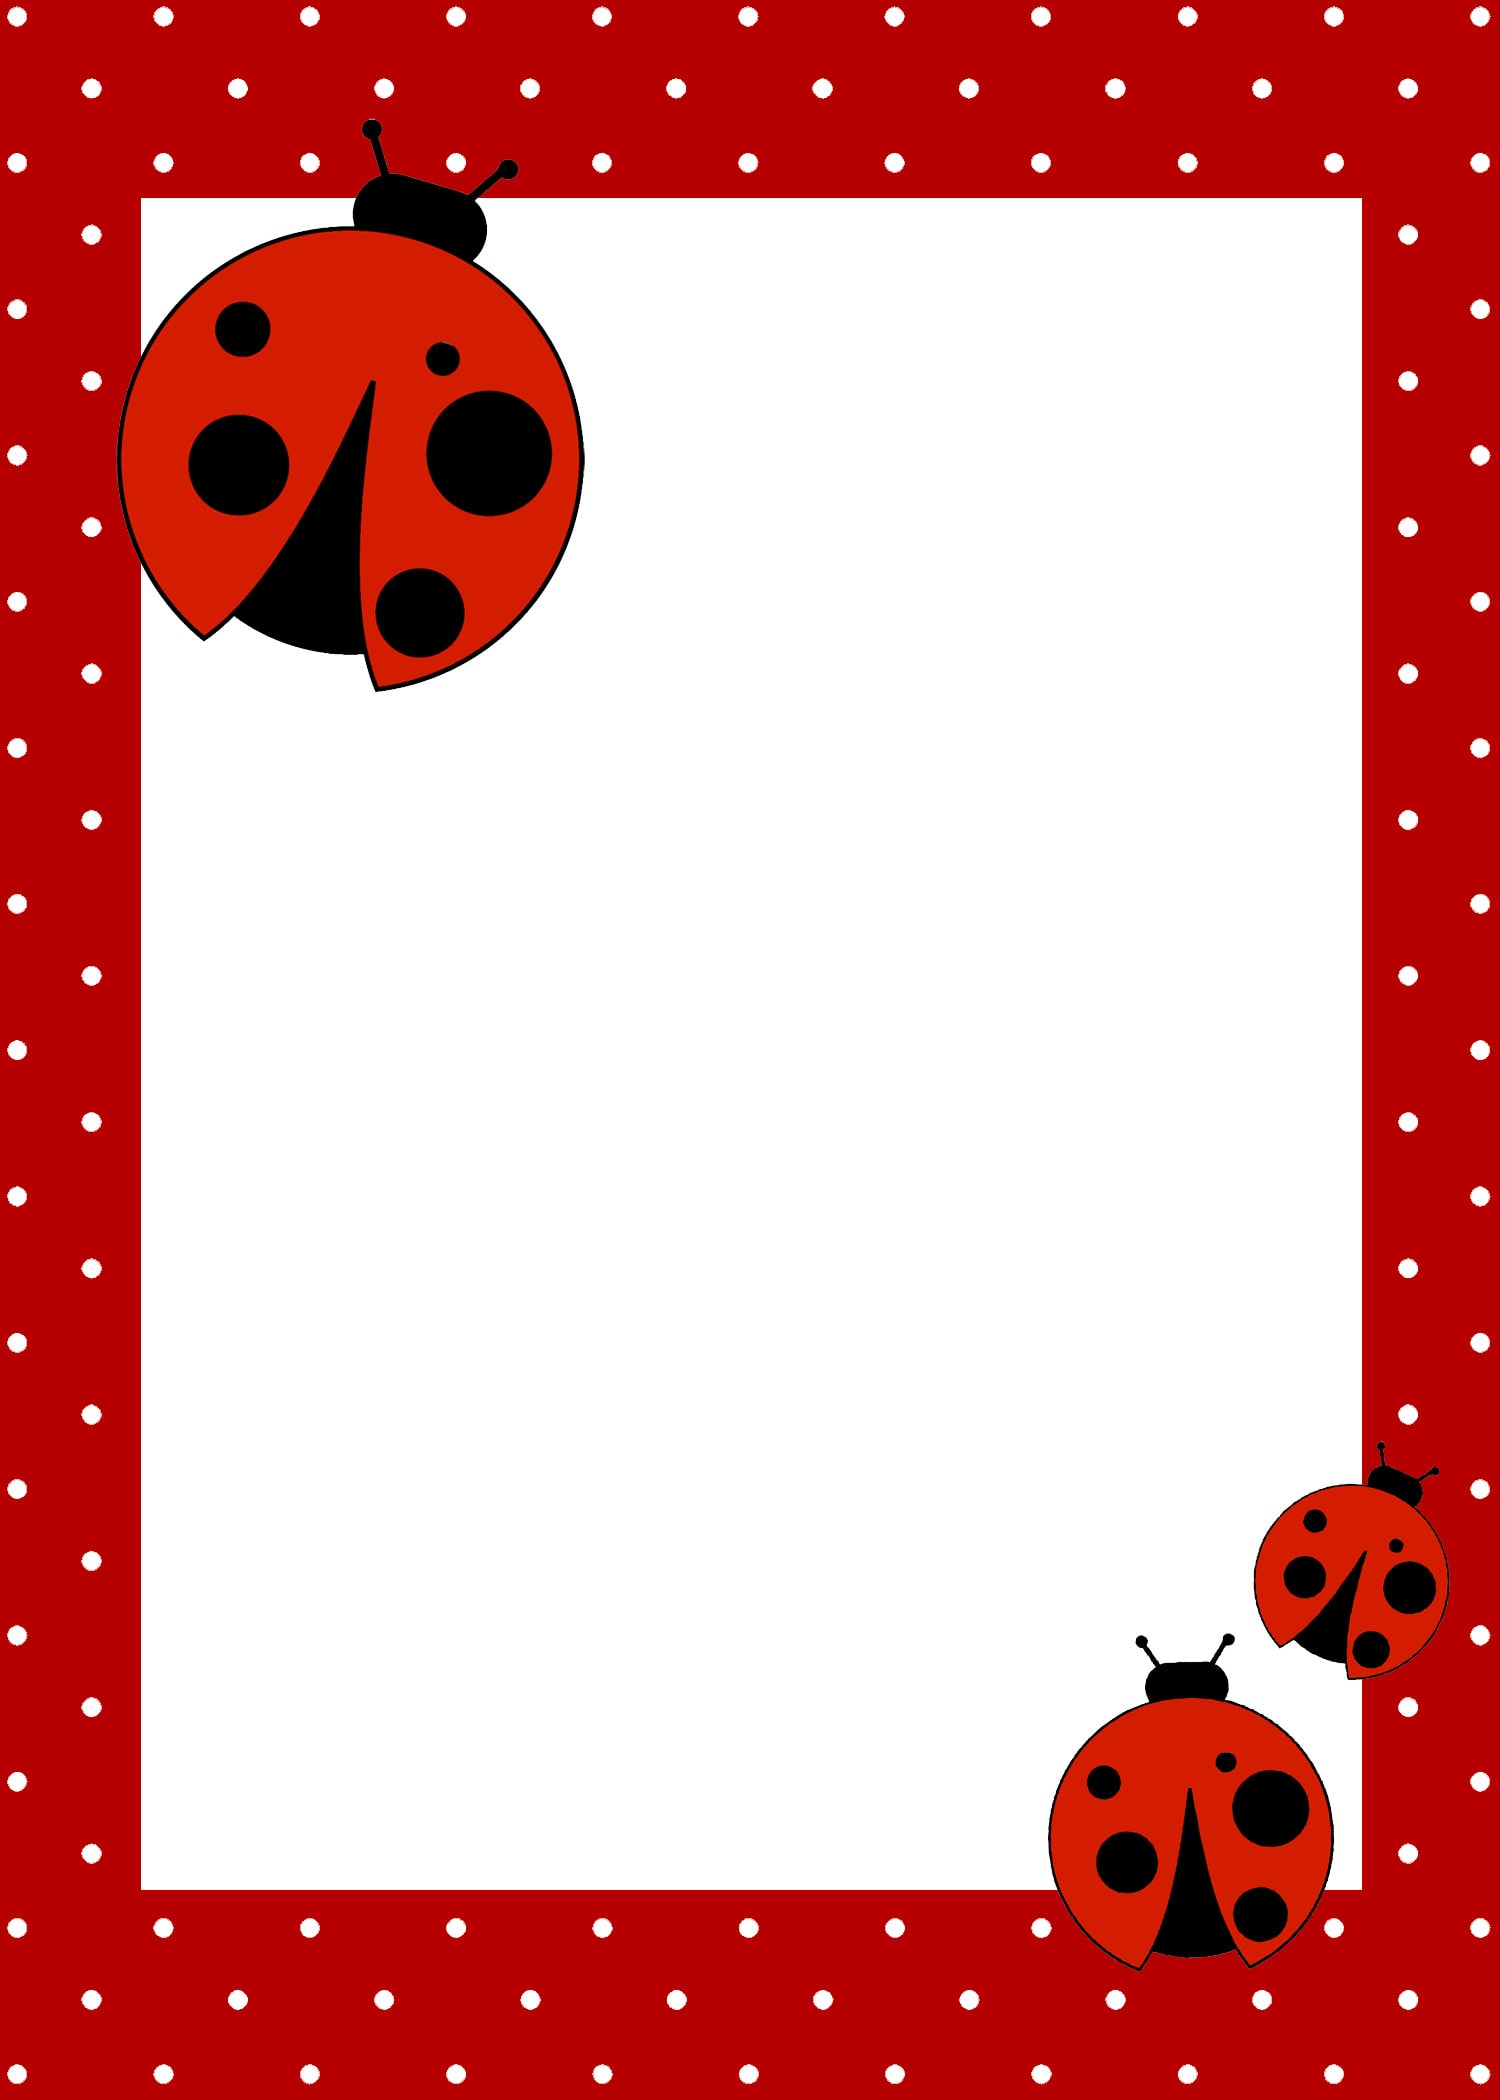 it for today! I hope everyone enjoys the FREE ladybug birthday party ...